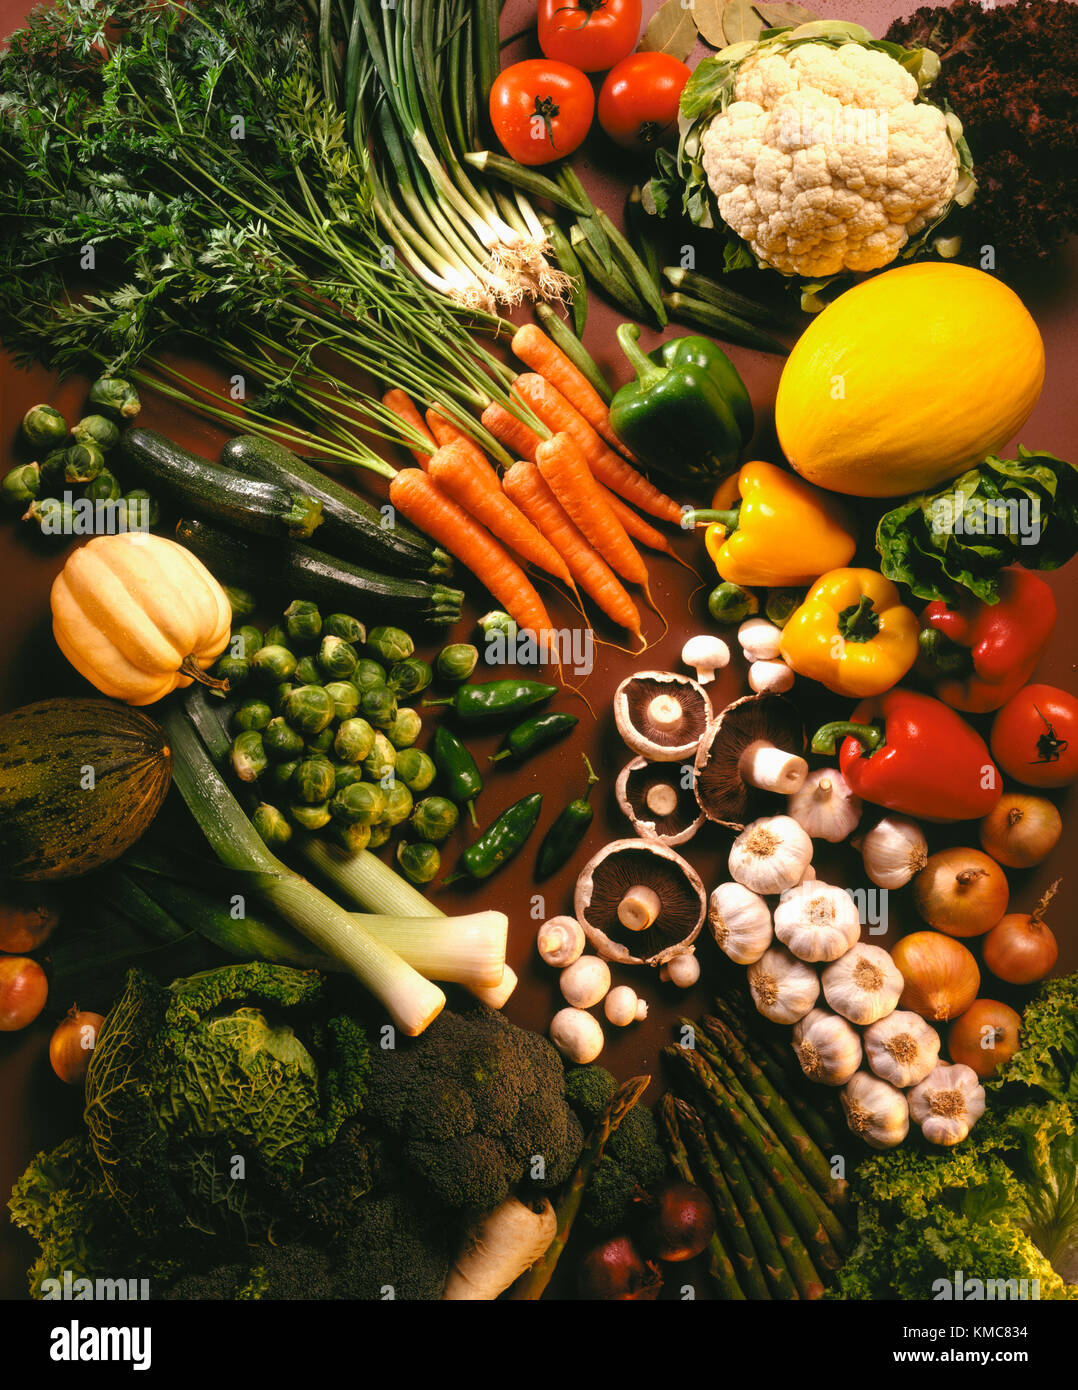 A selection of fresh vegetables - Stock Image